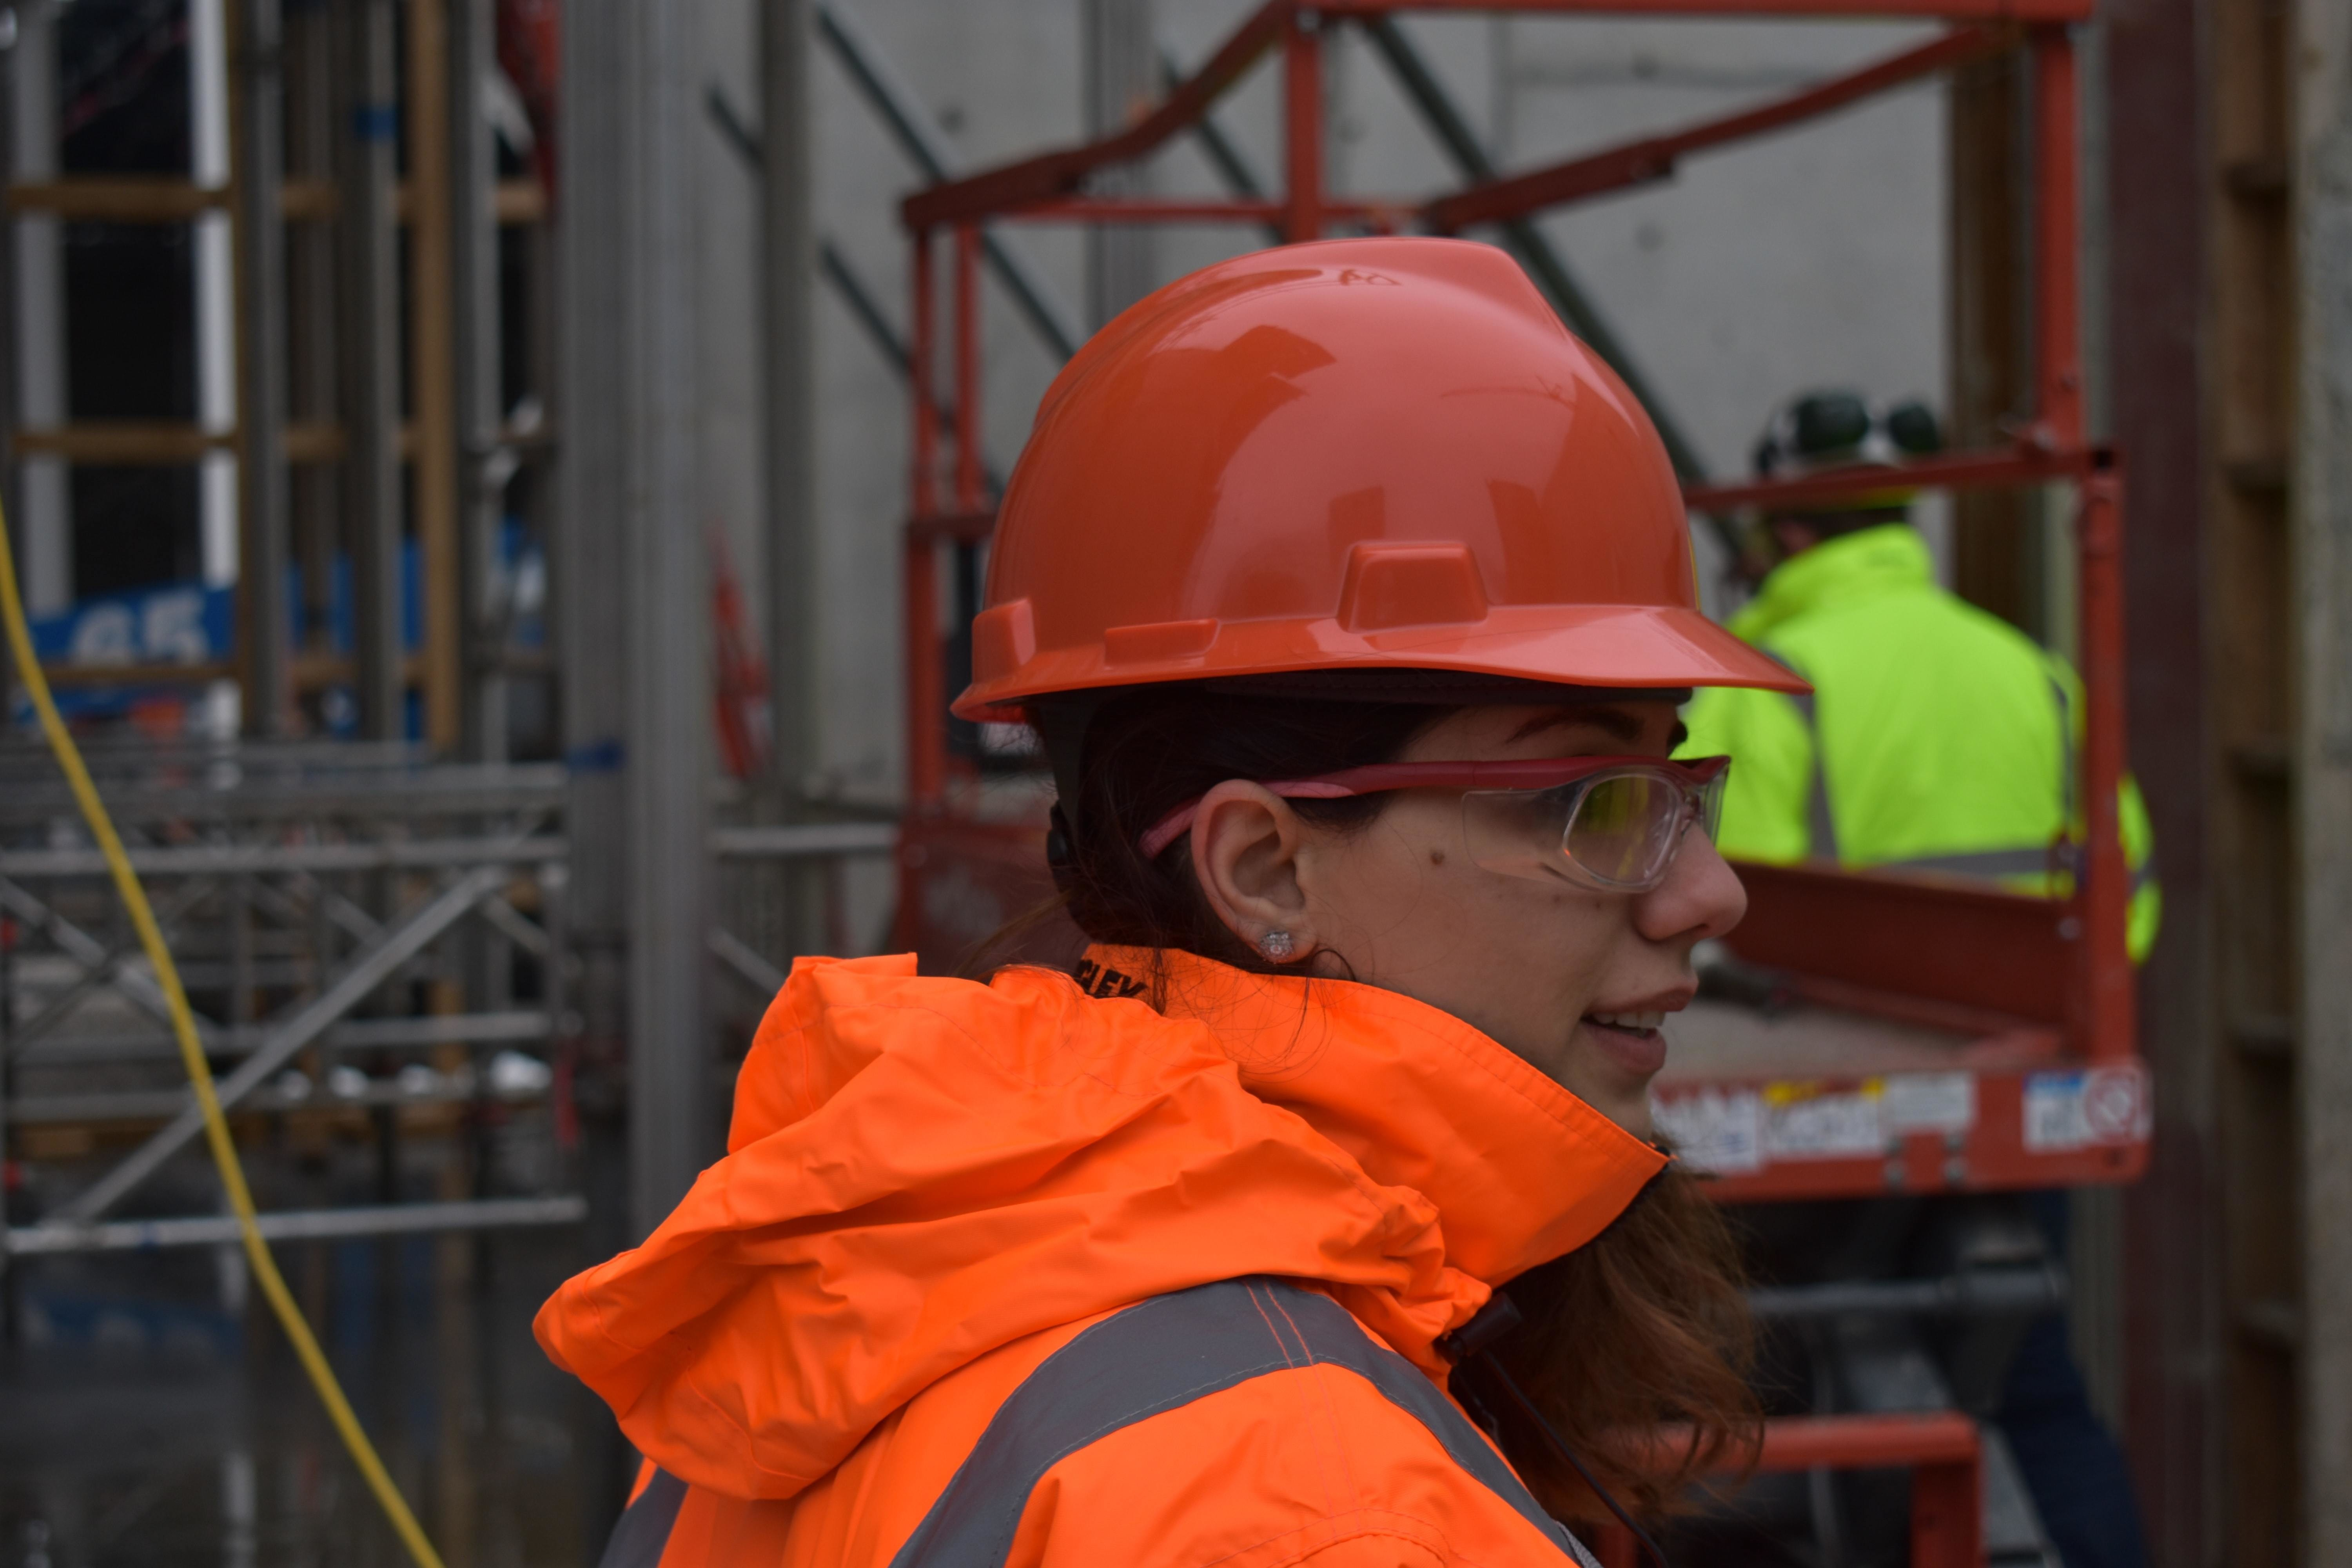 The construction sector would benefit from more female workers, like this one here.